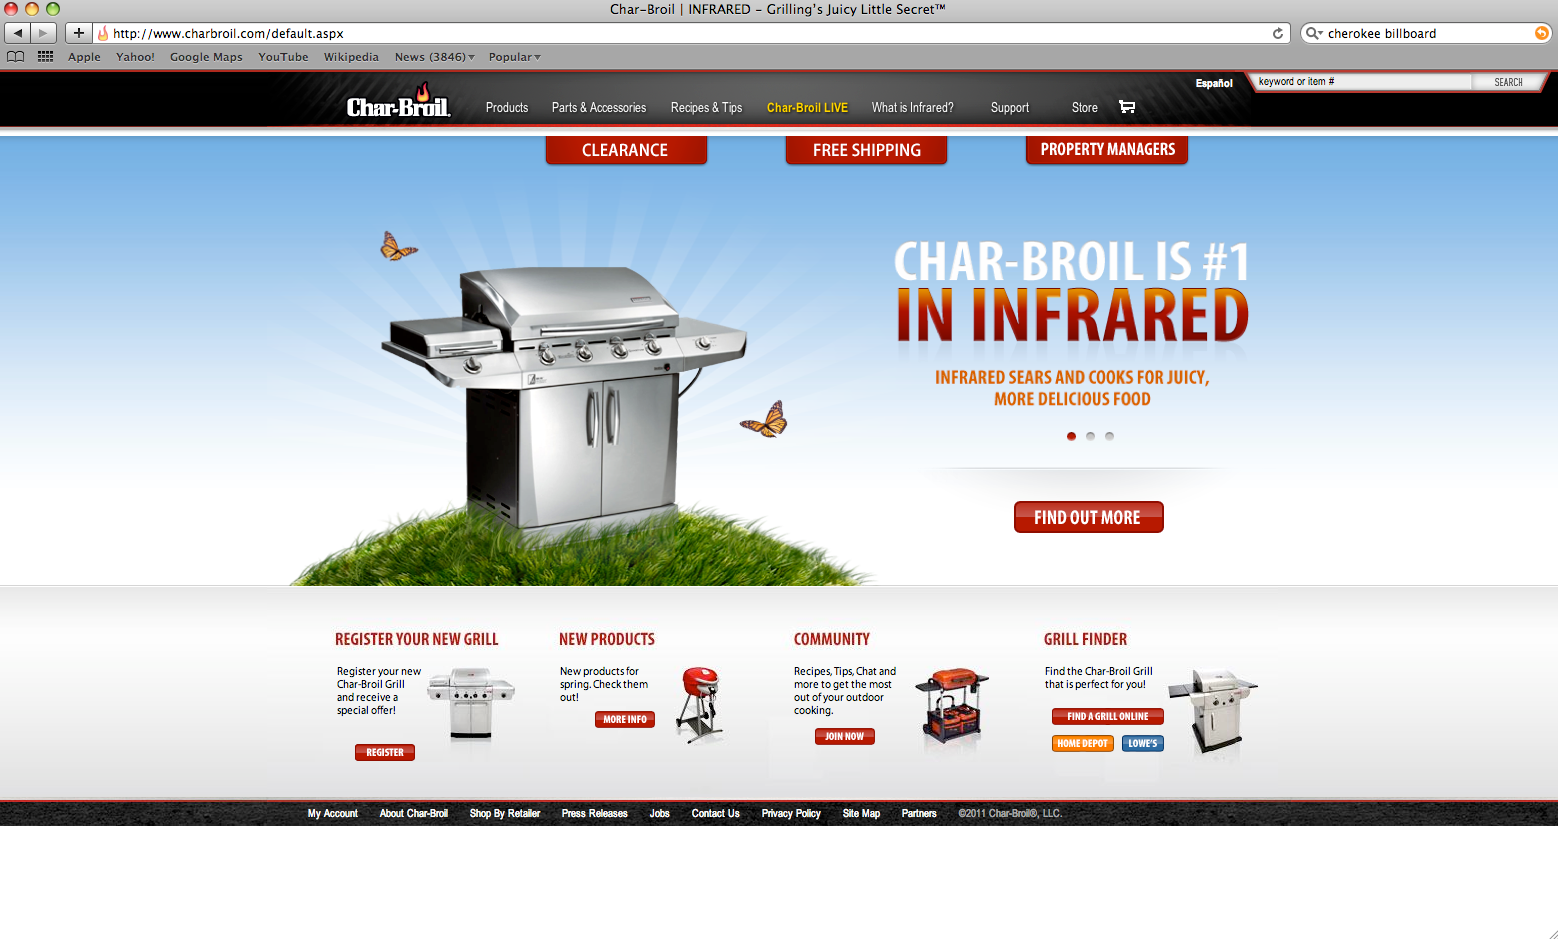 Char-Broil's Infrared Message on their Homepage